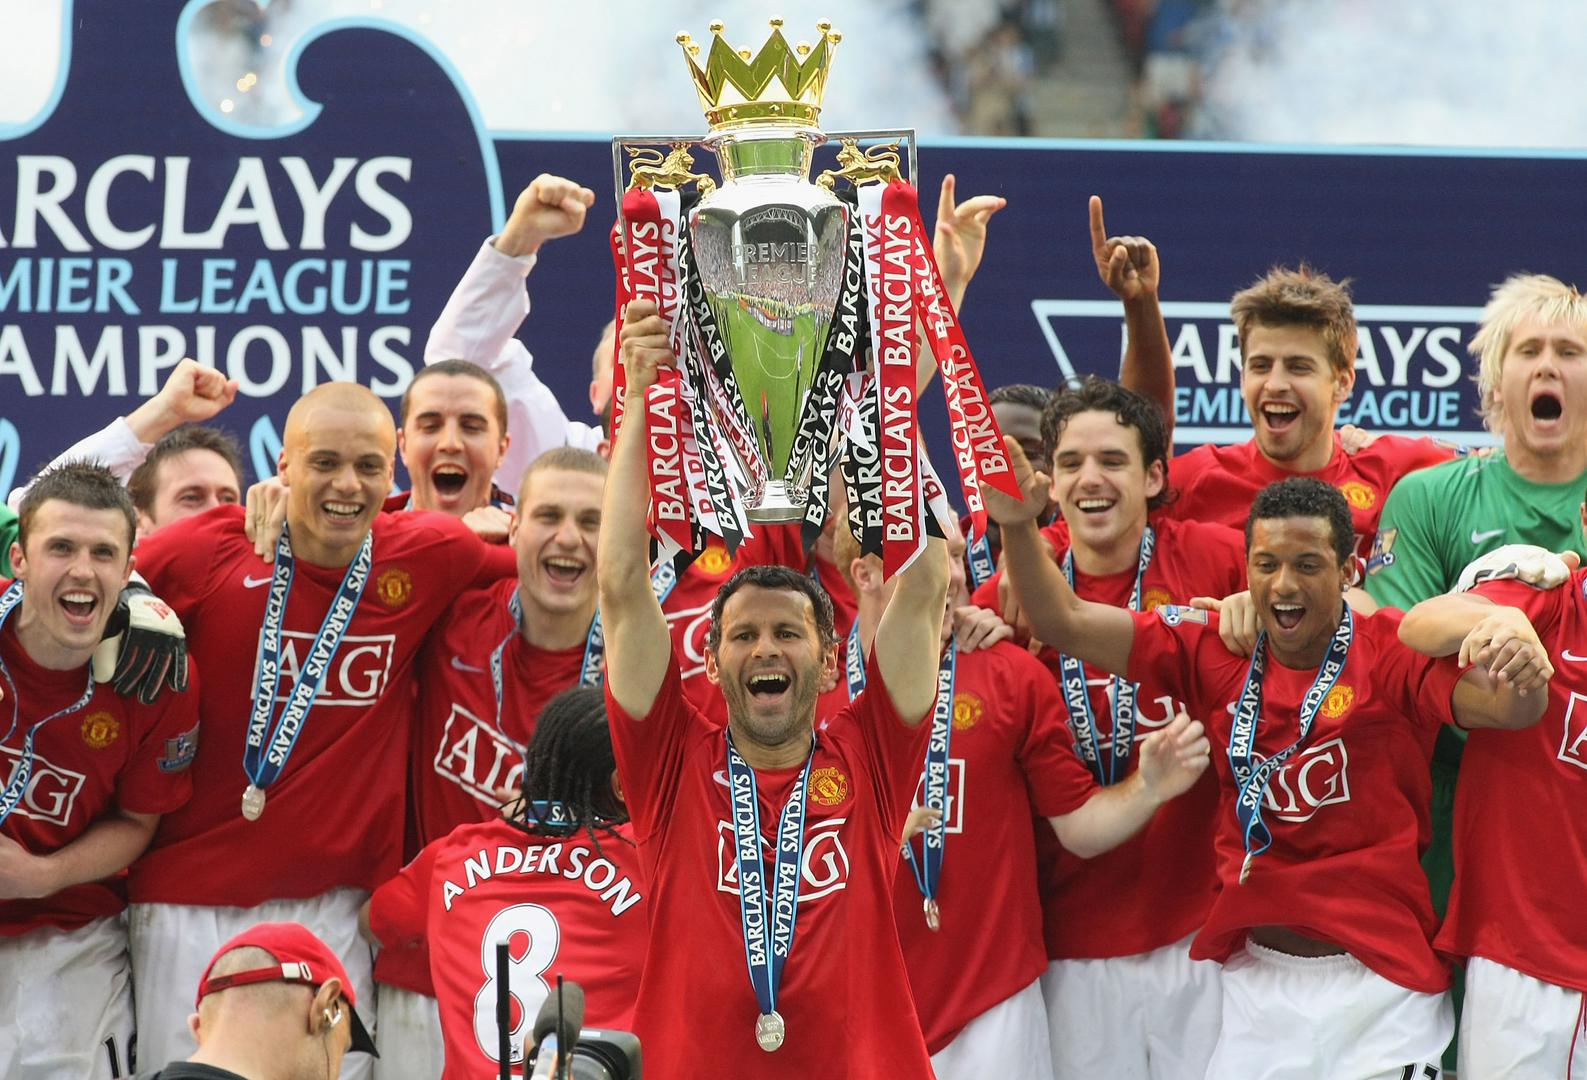 Ryan Giggs lifts the Premier League trophy